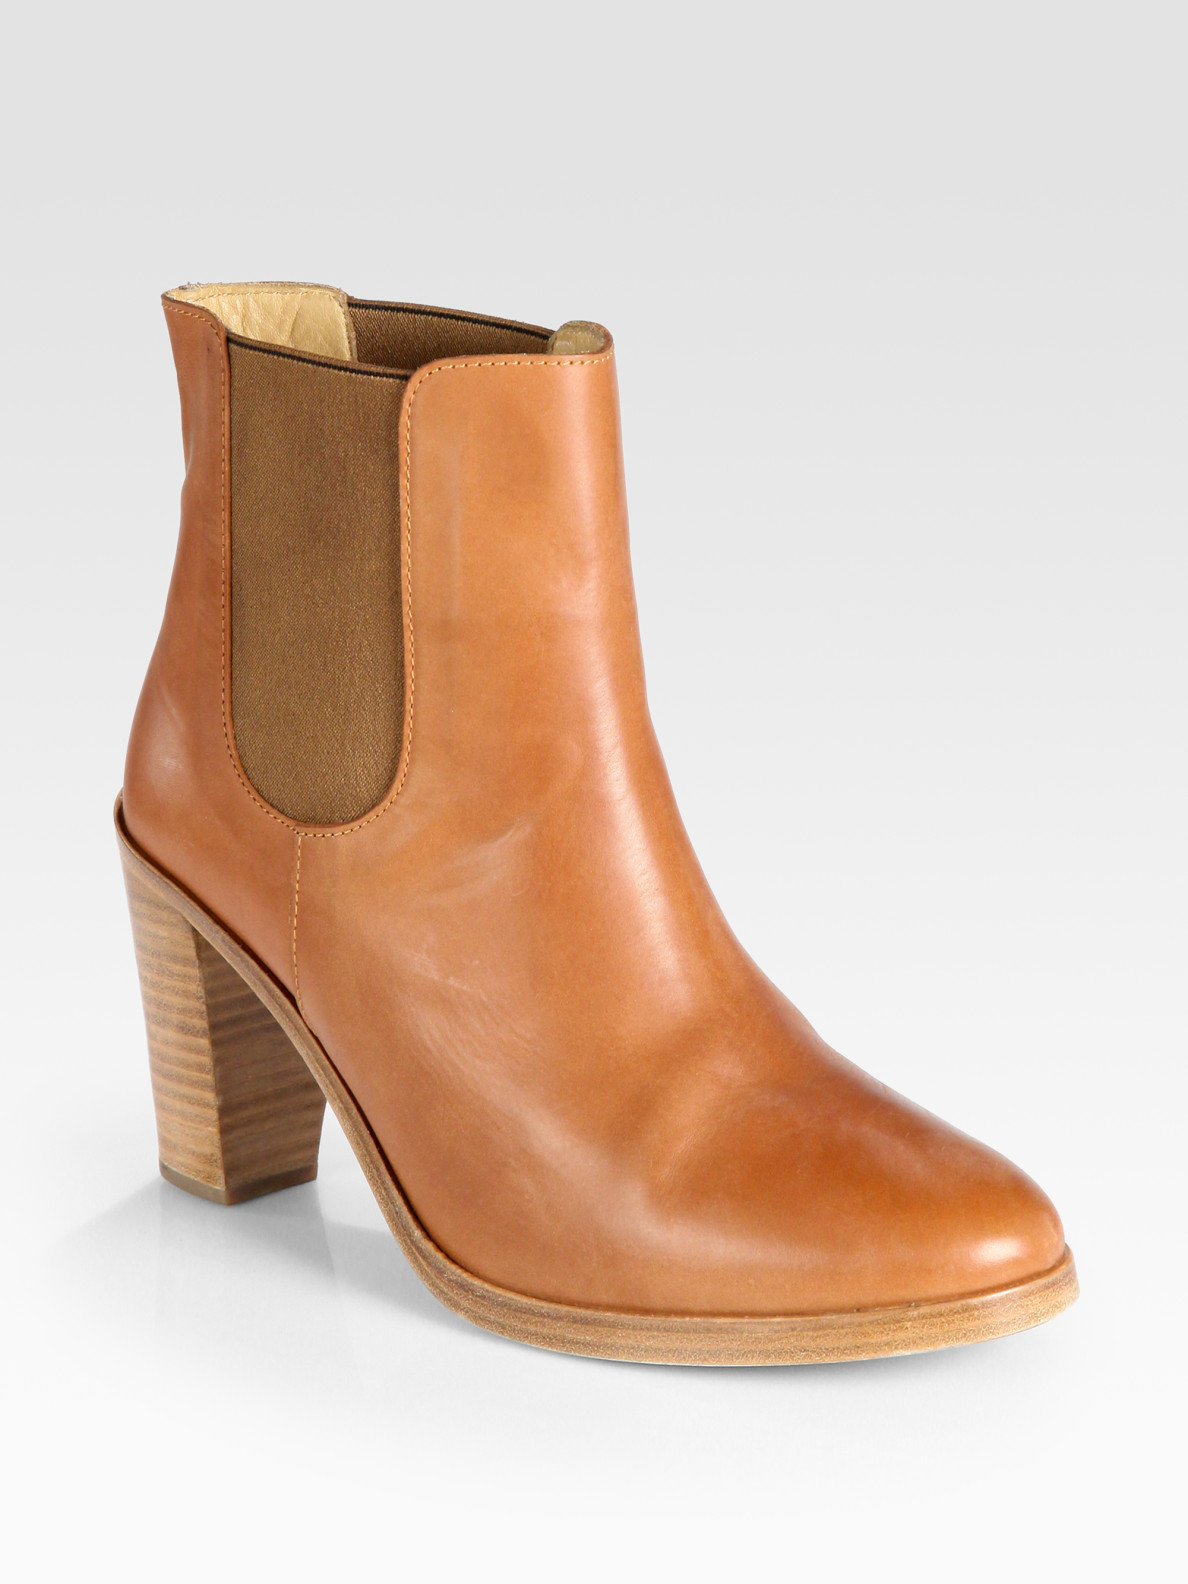 74665bcc8cb74 A.P.C. Brown Leather Ankle Boots